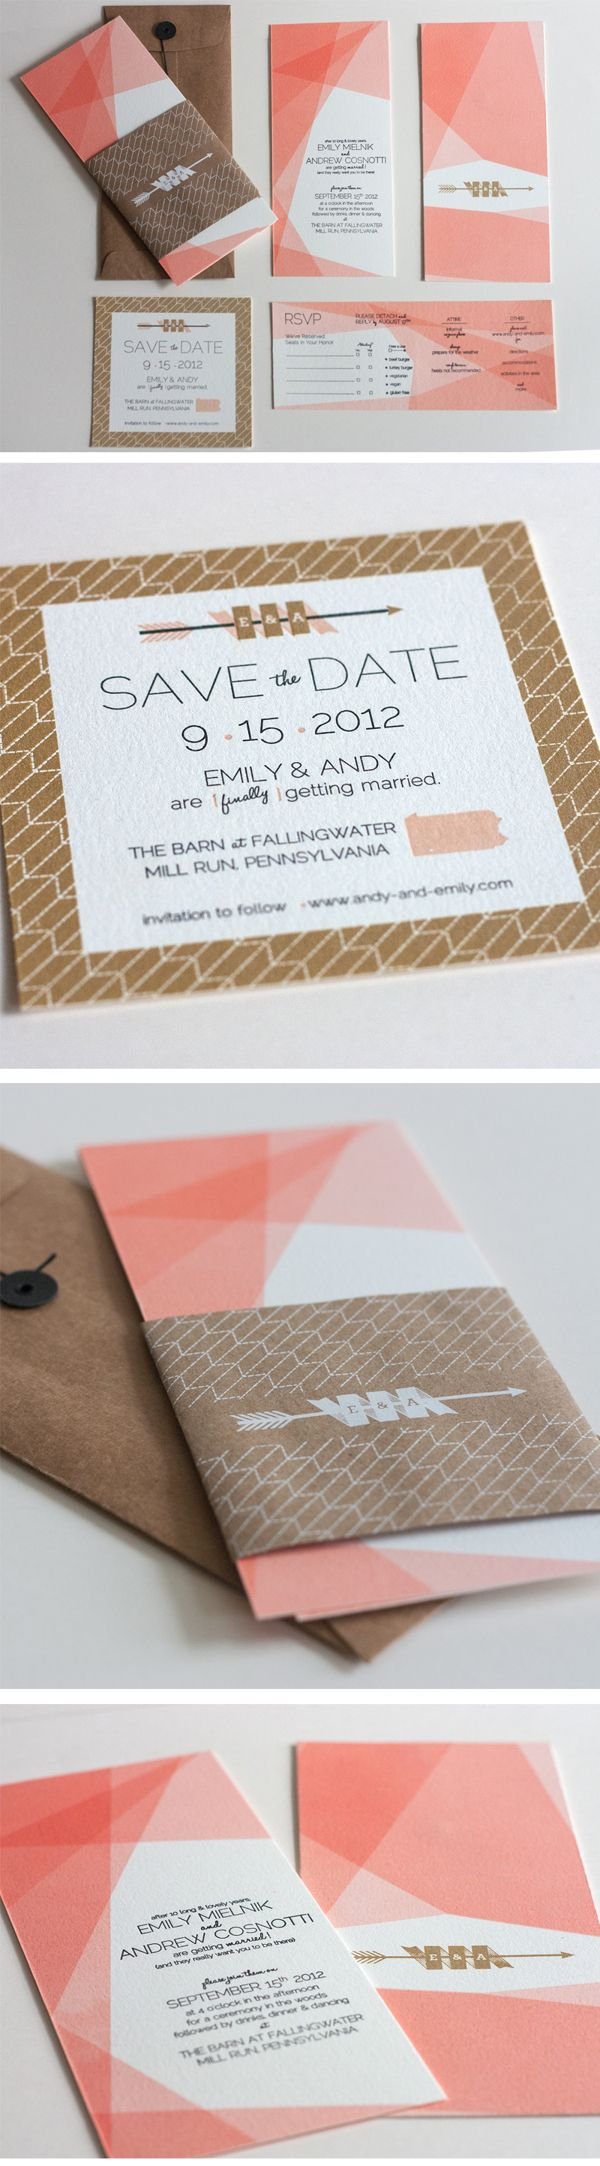 Wedding Invitations - Emily  Andy by Joseph DeFerrari, via Behance